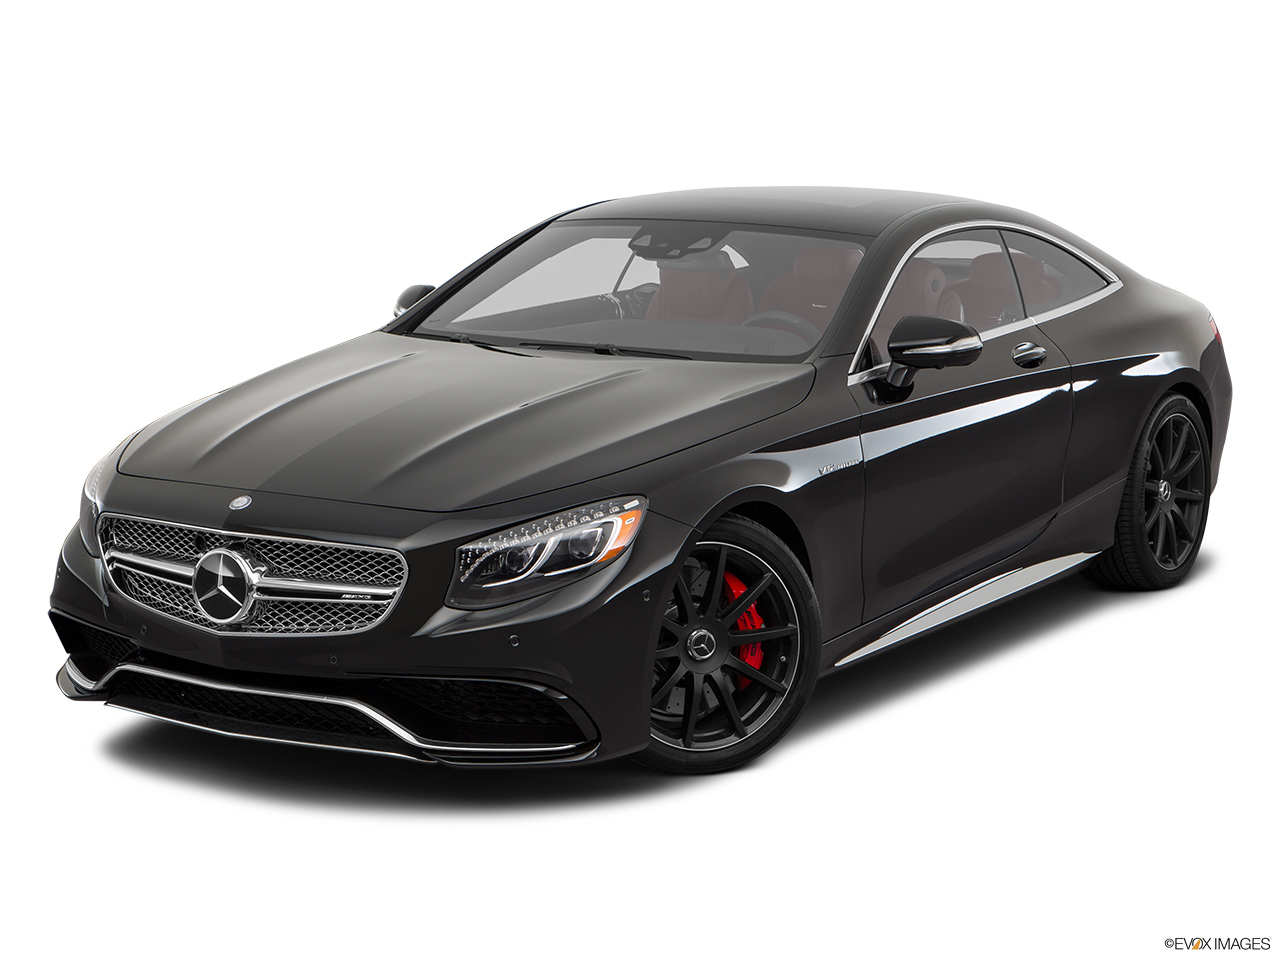 Mercedes benz s 65 amg coupe price in saudi arabia new for New mercedes benz price